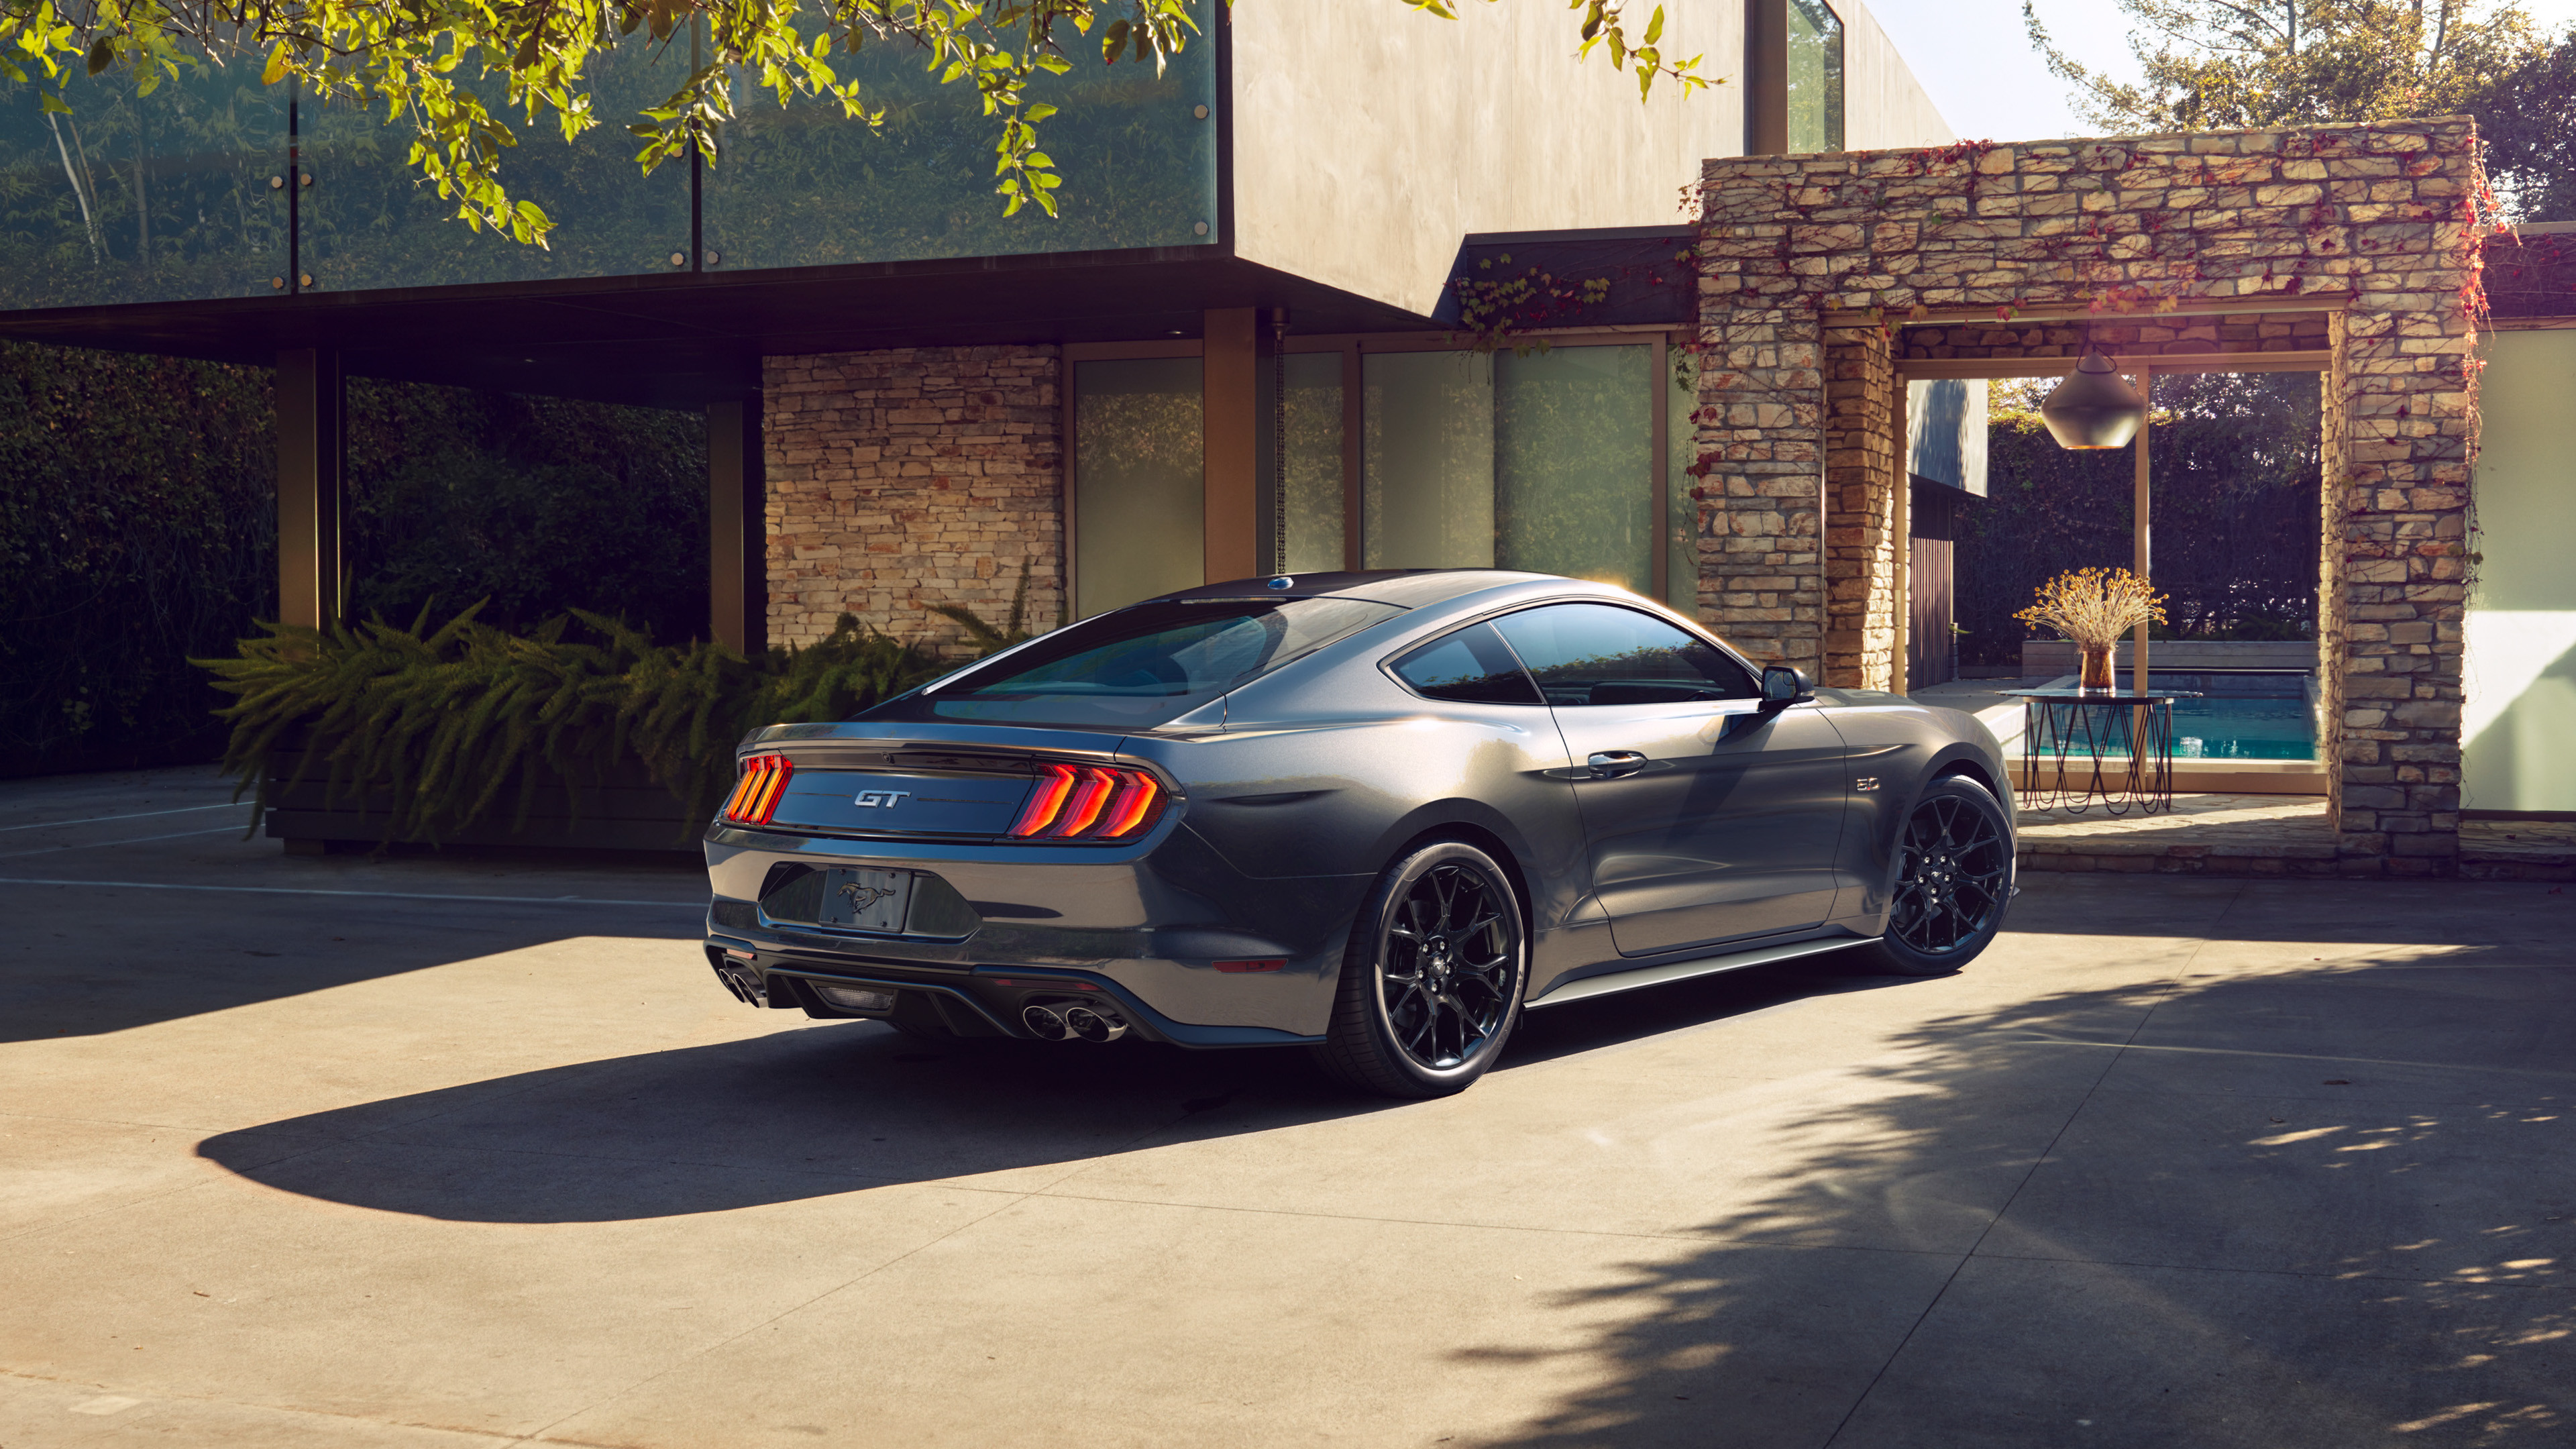 ford mustang silver cgi 1539792655 - Ford Mustang Silver Cgi - mustang wallpapers, hd-wallpapers, ford mustang wallpapers, cgi wallpapers, cars wallpapers, behance wallpapers, 4k-wallpapers